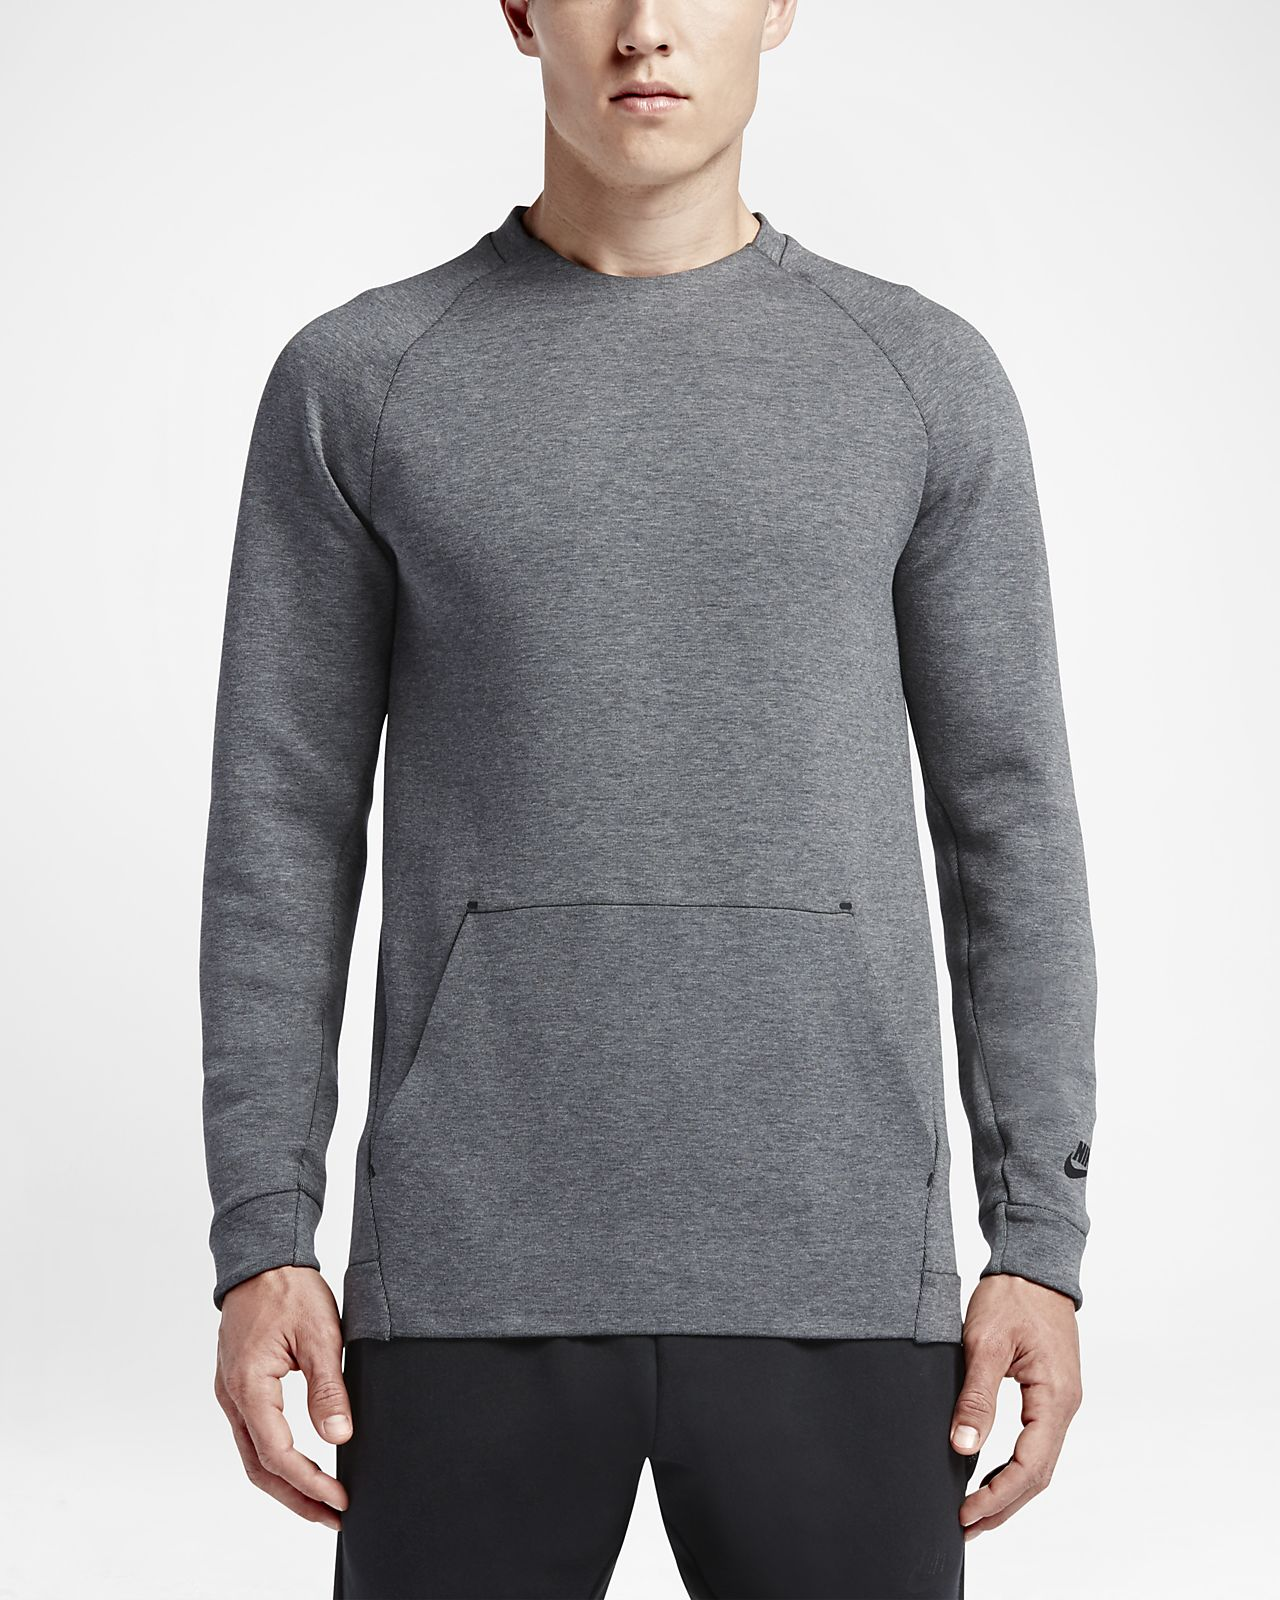 Homme Sweat shirt Fleece Tech Sportswear pour Crew Nike ZuOPkXi